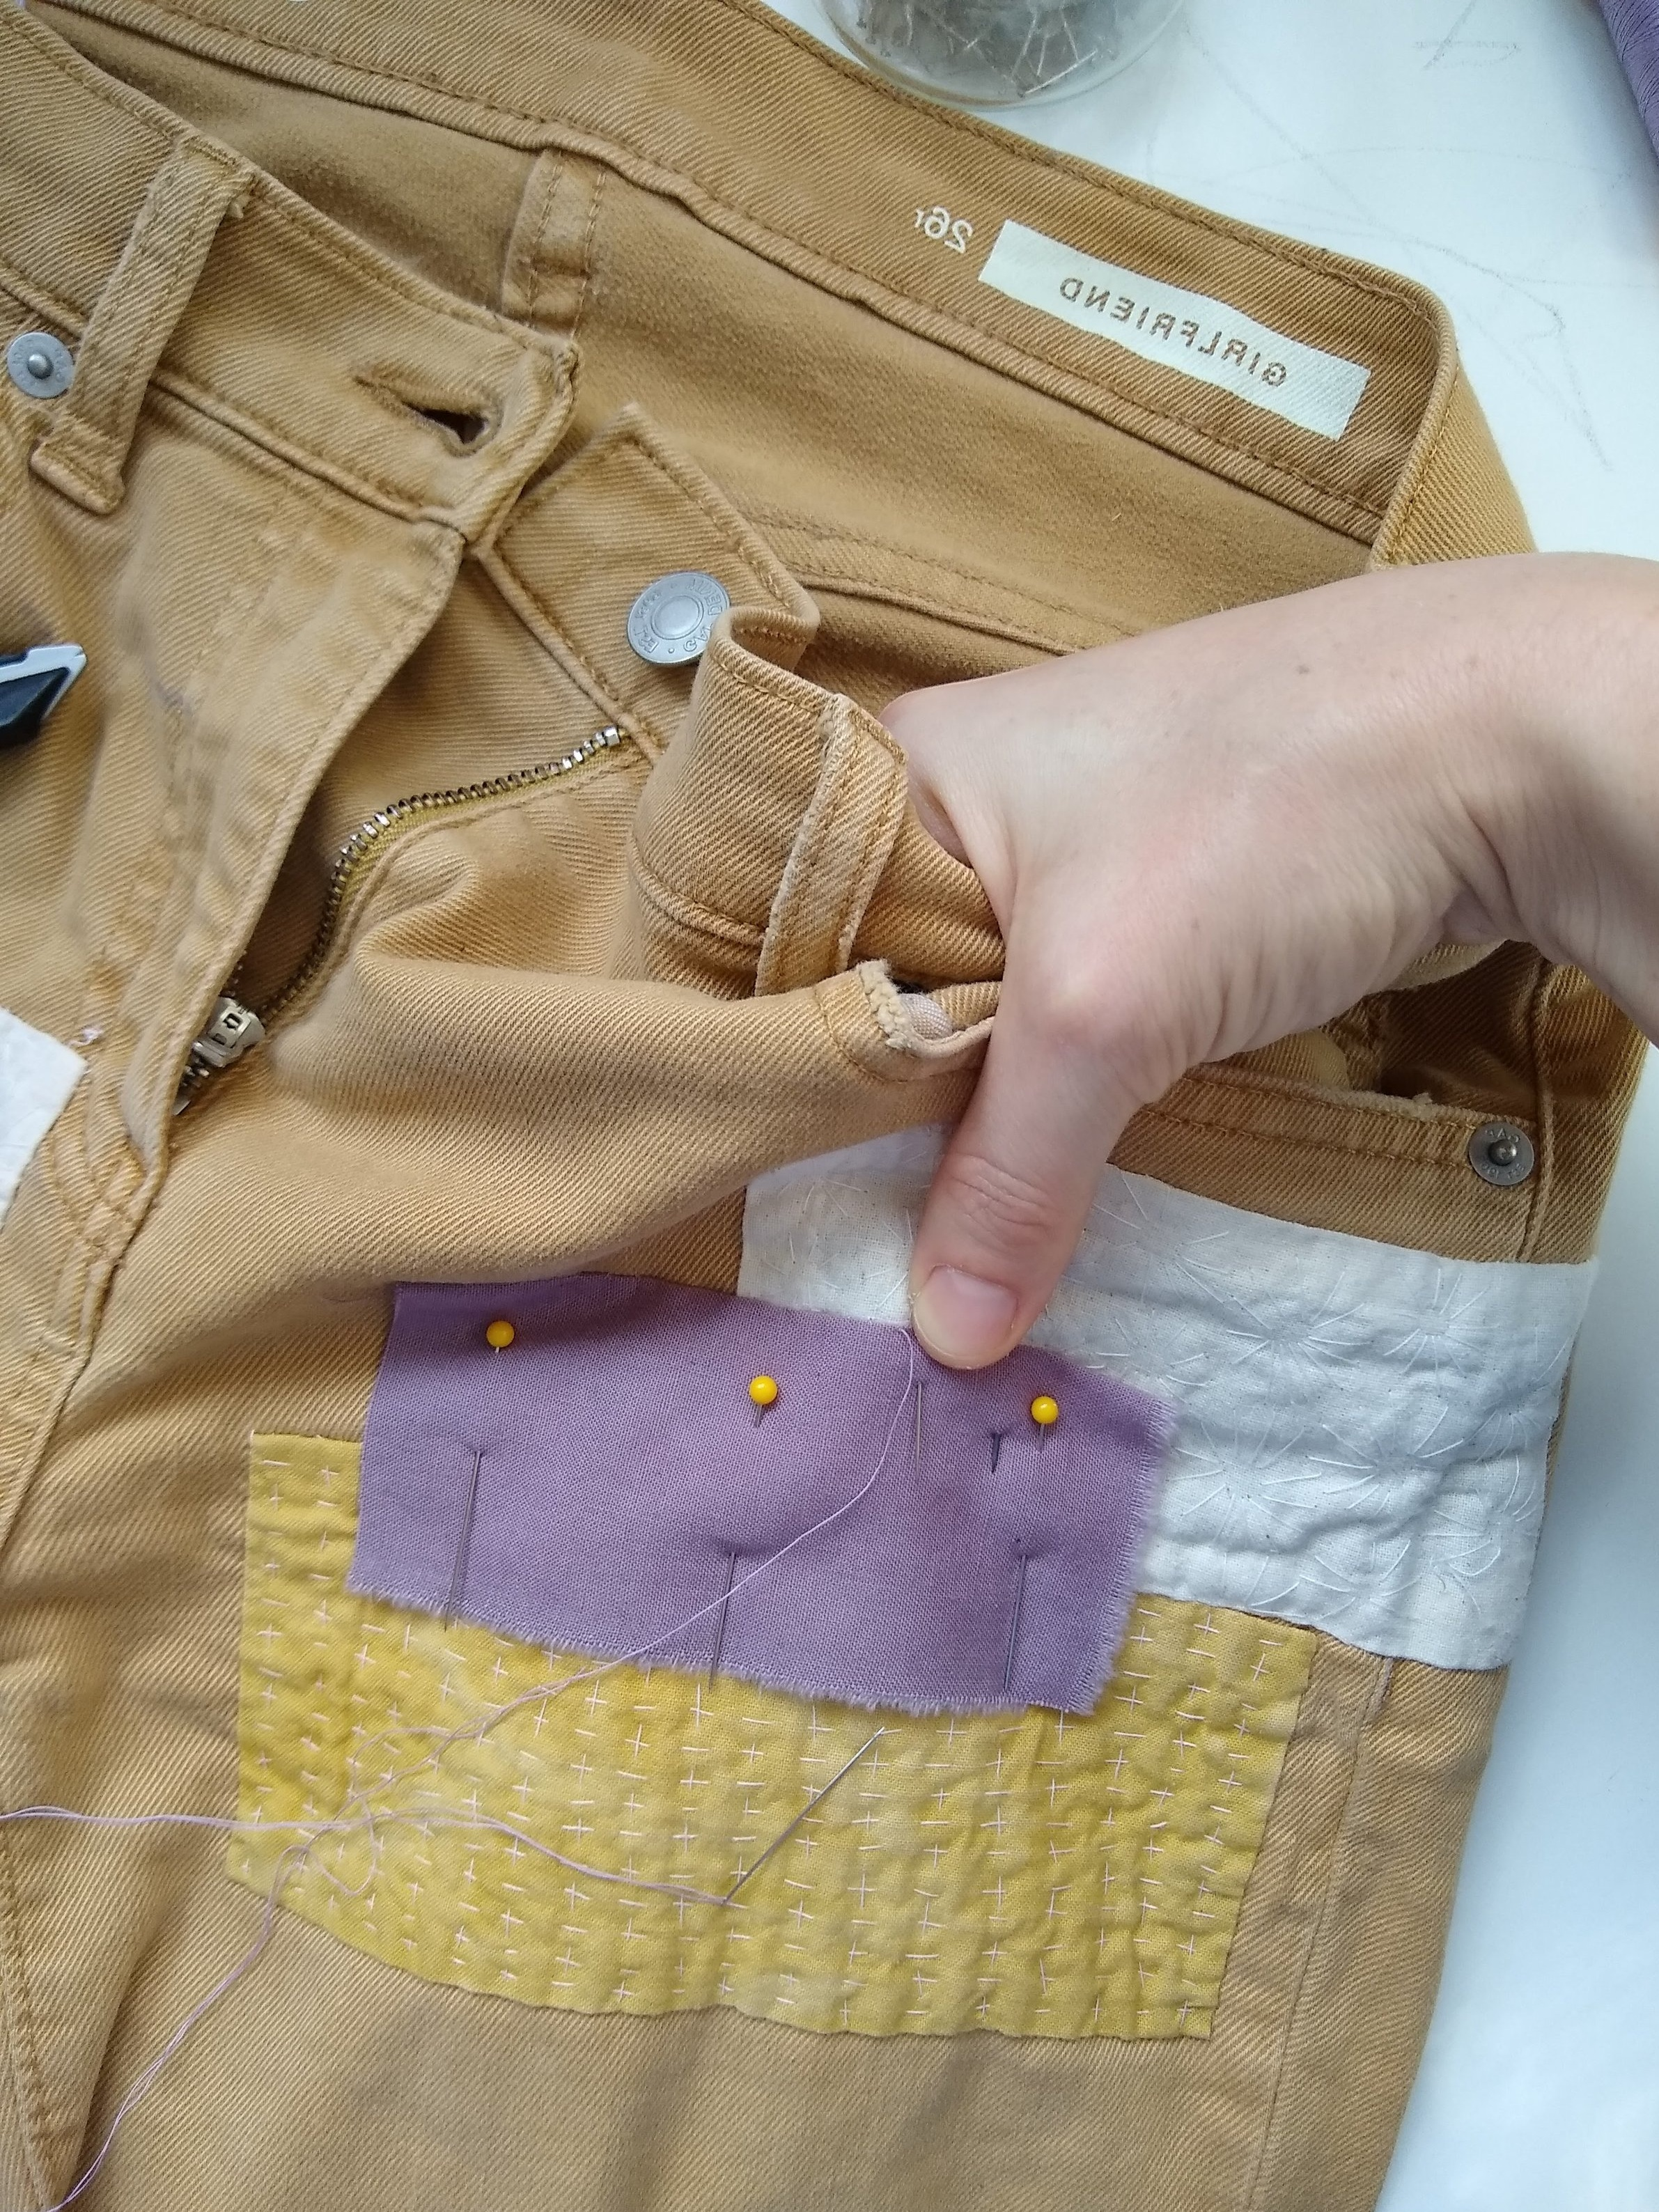 To get a good handle on your sewing, be creative. Slip a hand in a pocket or an arm up the leg of your mend. Just don't sew your pocket closed!